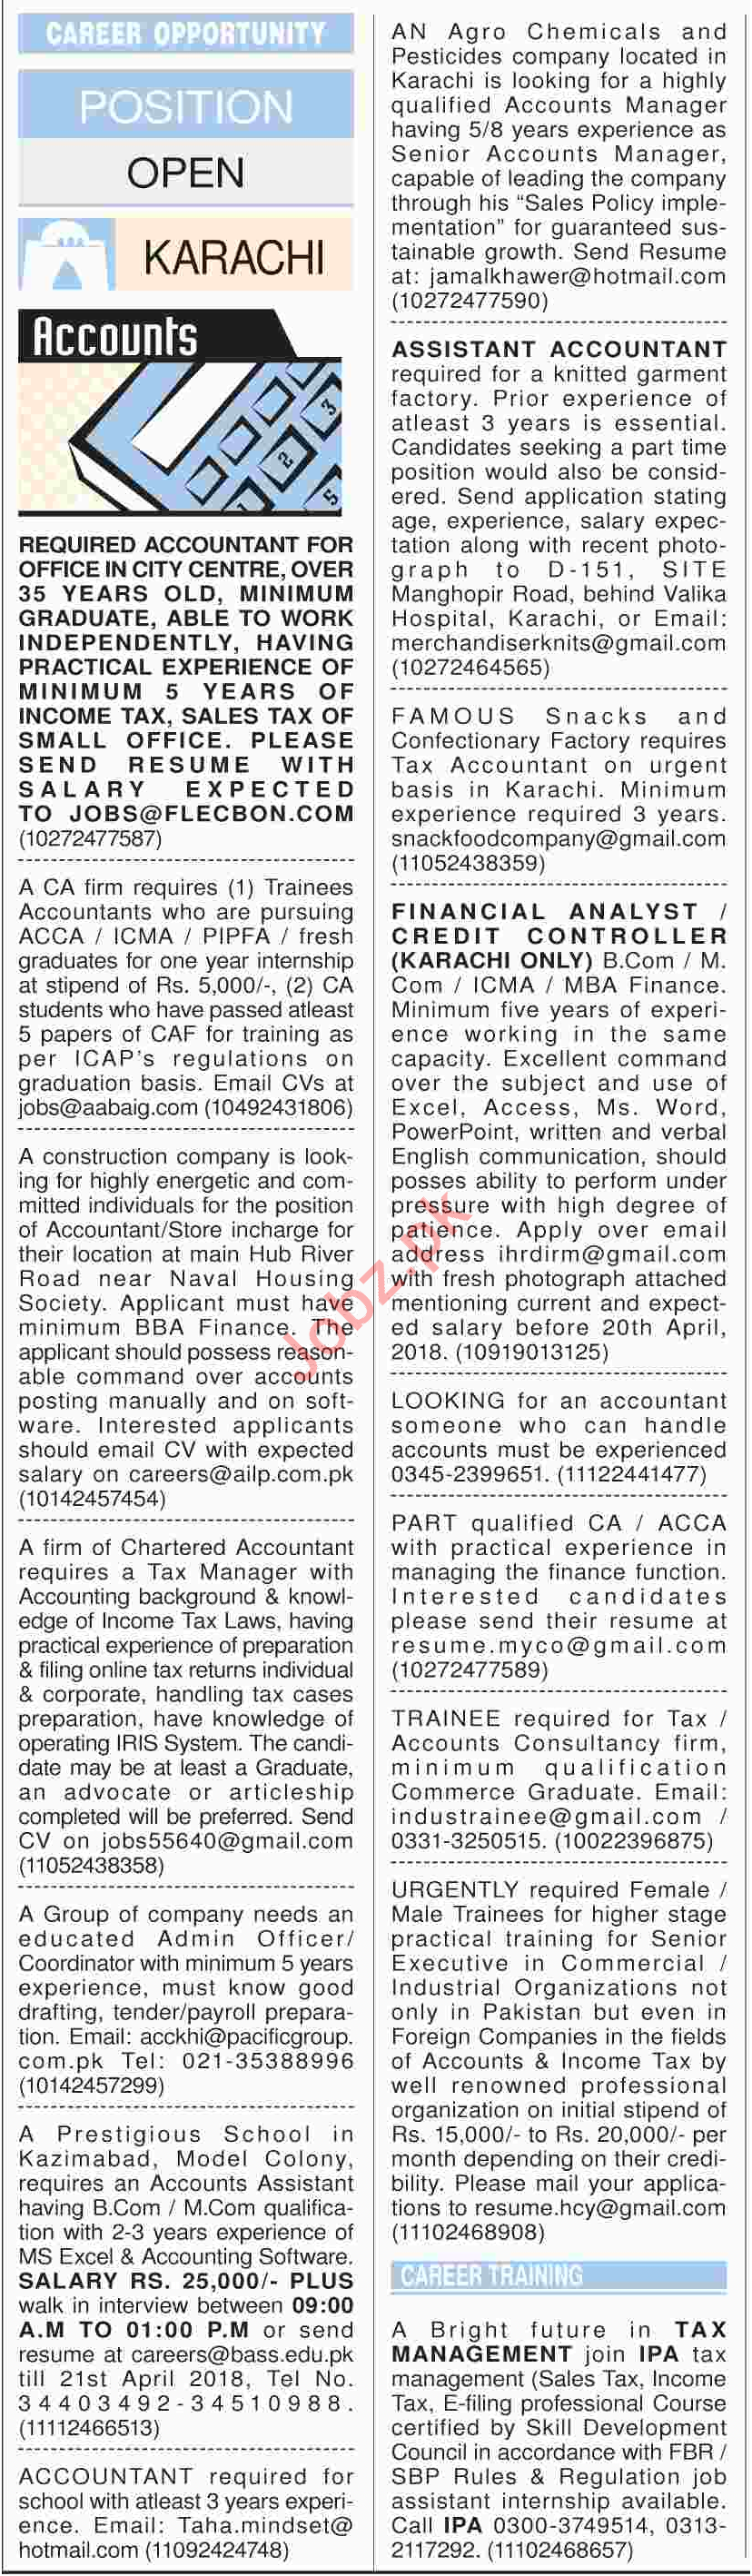 Daily Dawn Newspaper Classified Jobs 2018 for Accountant